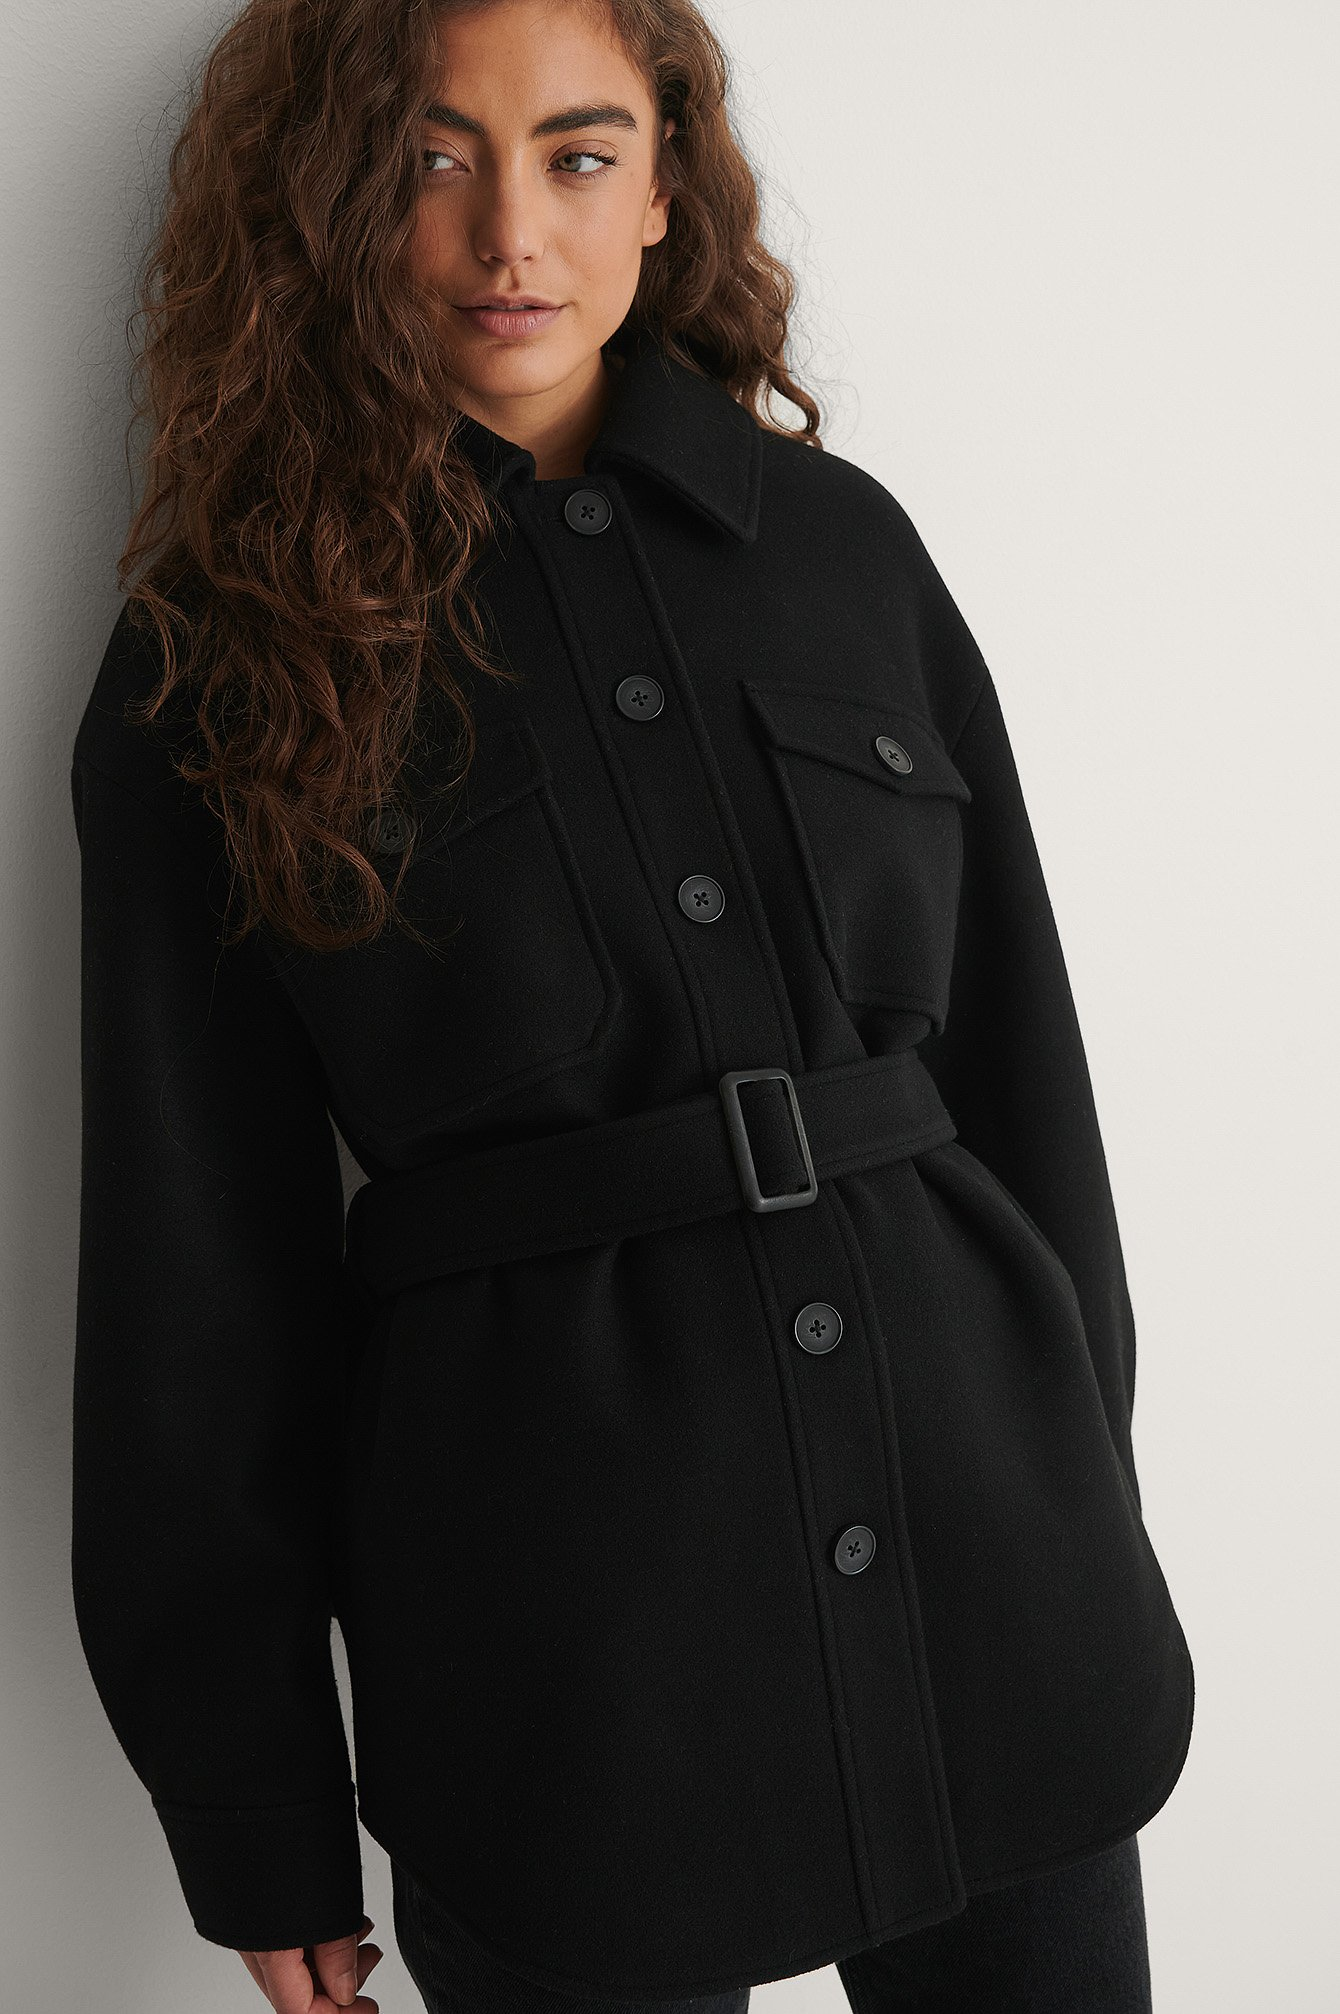 Black Belted Chest Pocket Jacket